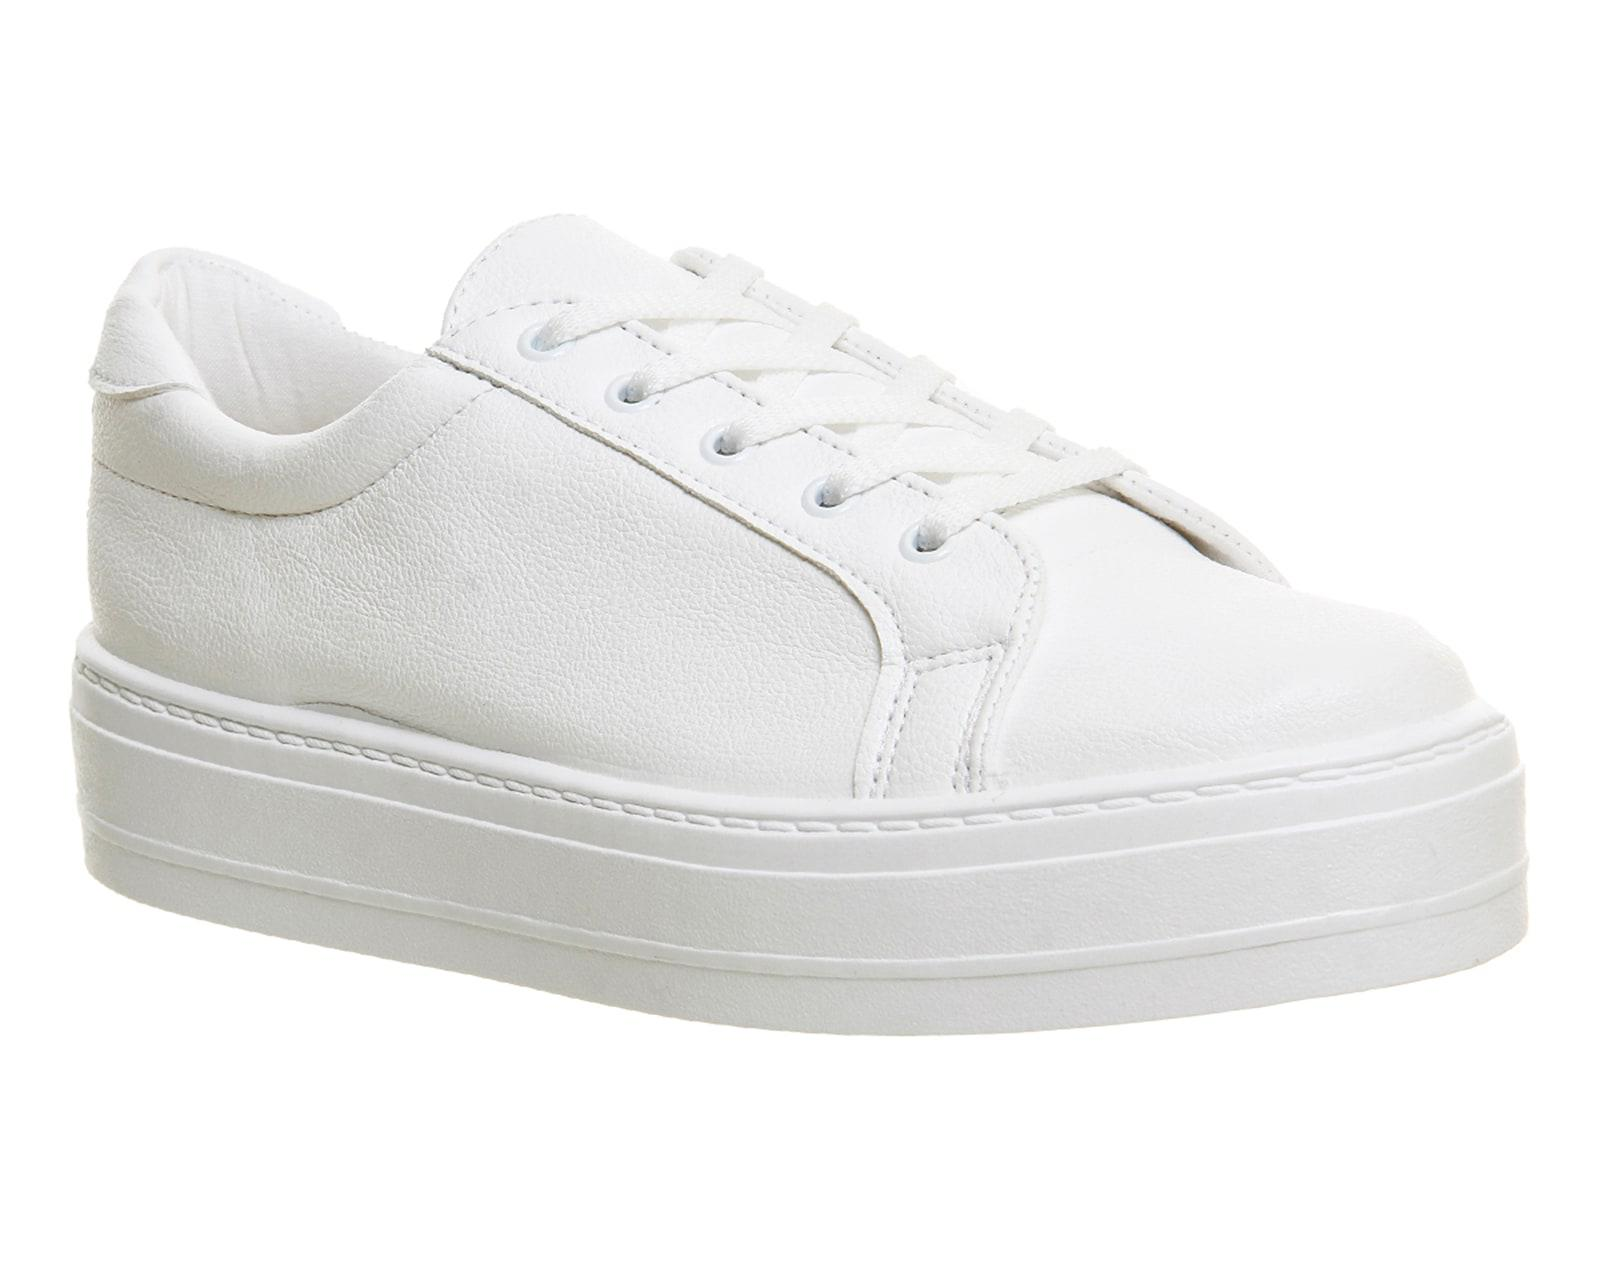 wholesale price 100% genuine hot product Office White Diva Flatform Lace Up Trainers